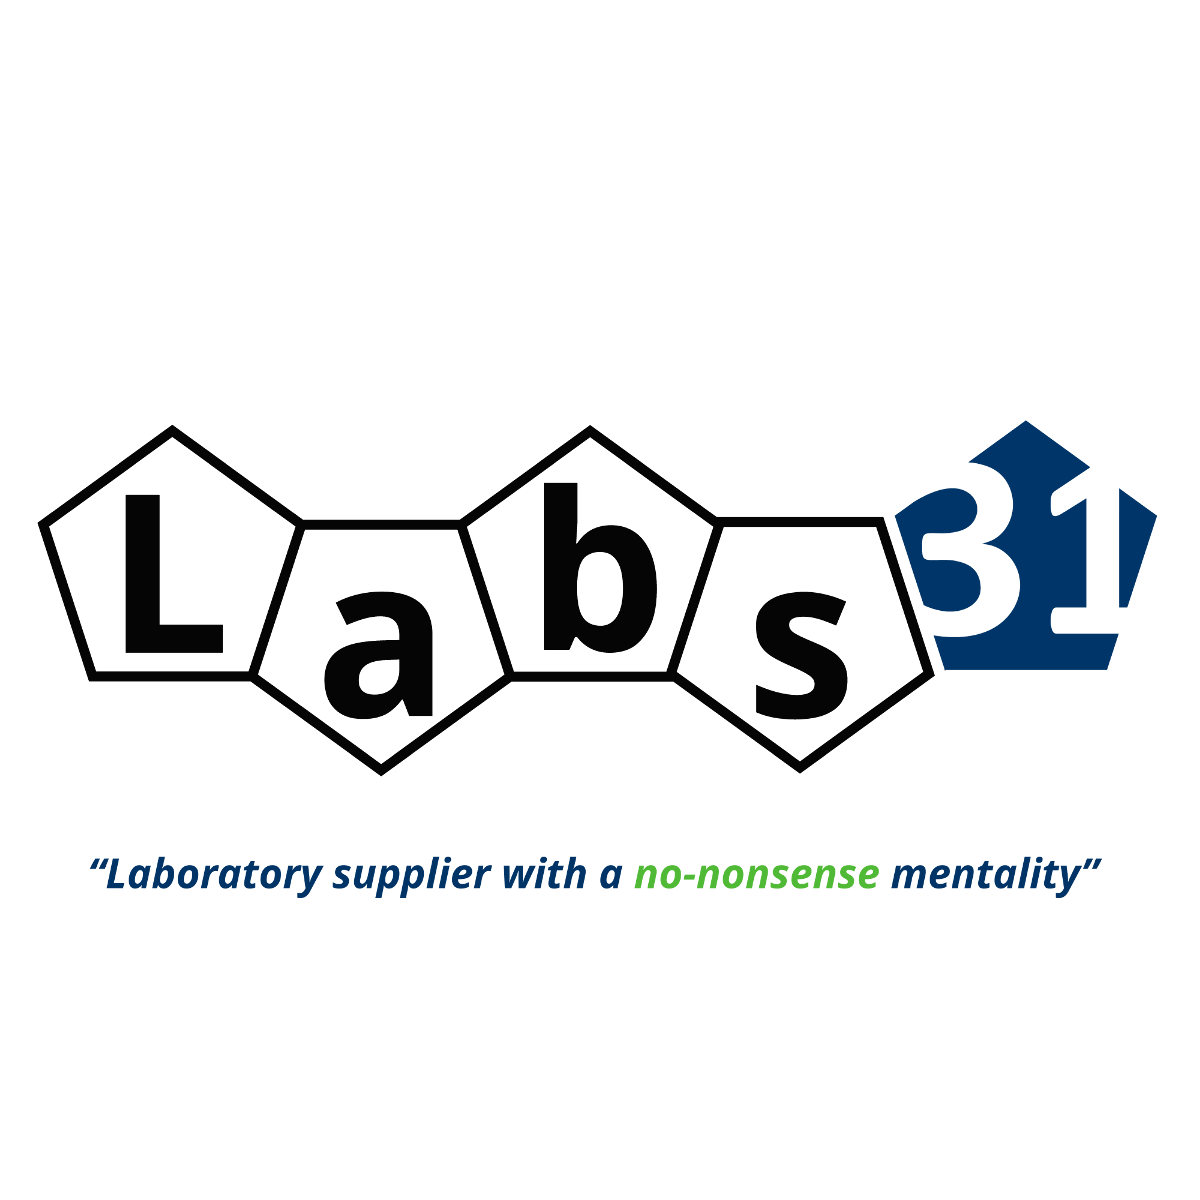 Labs31-no-nonsense laboratory supplier